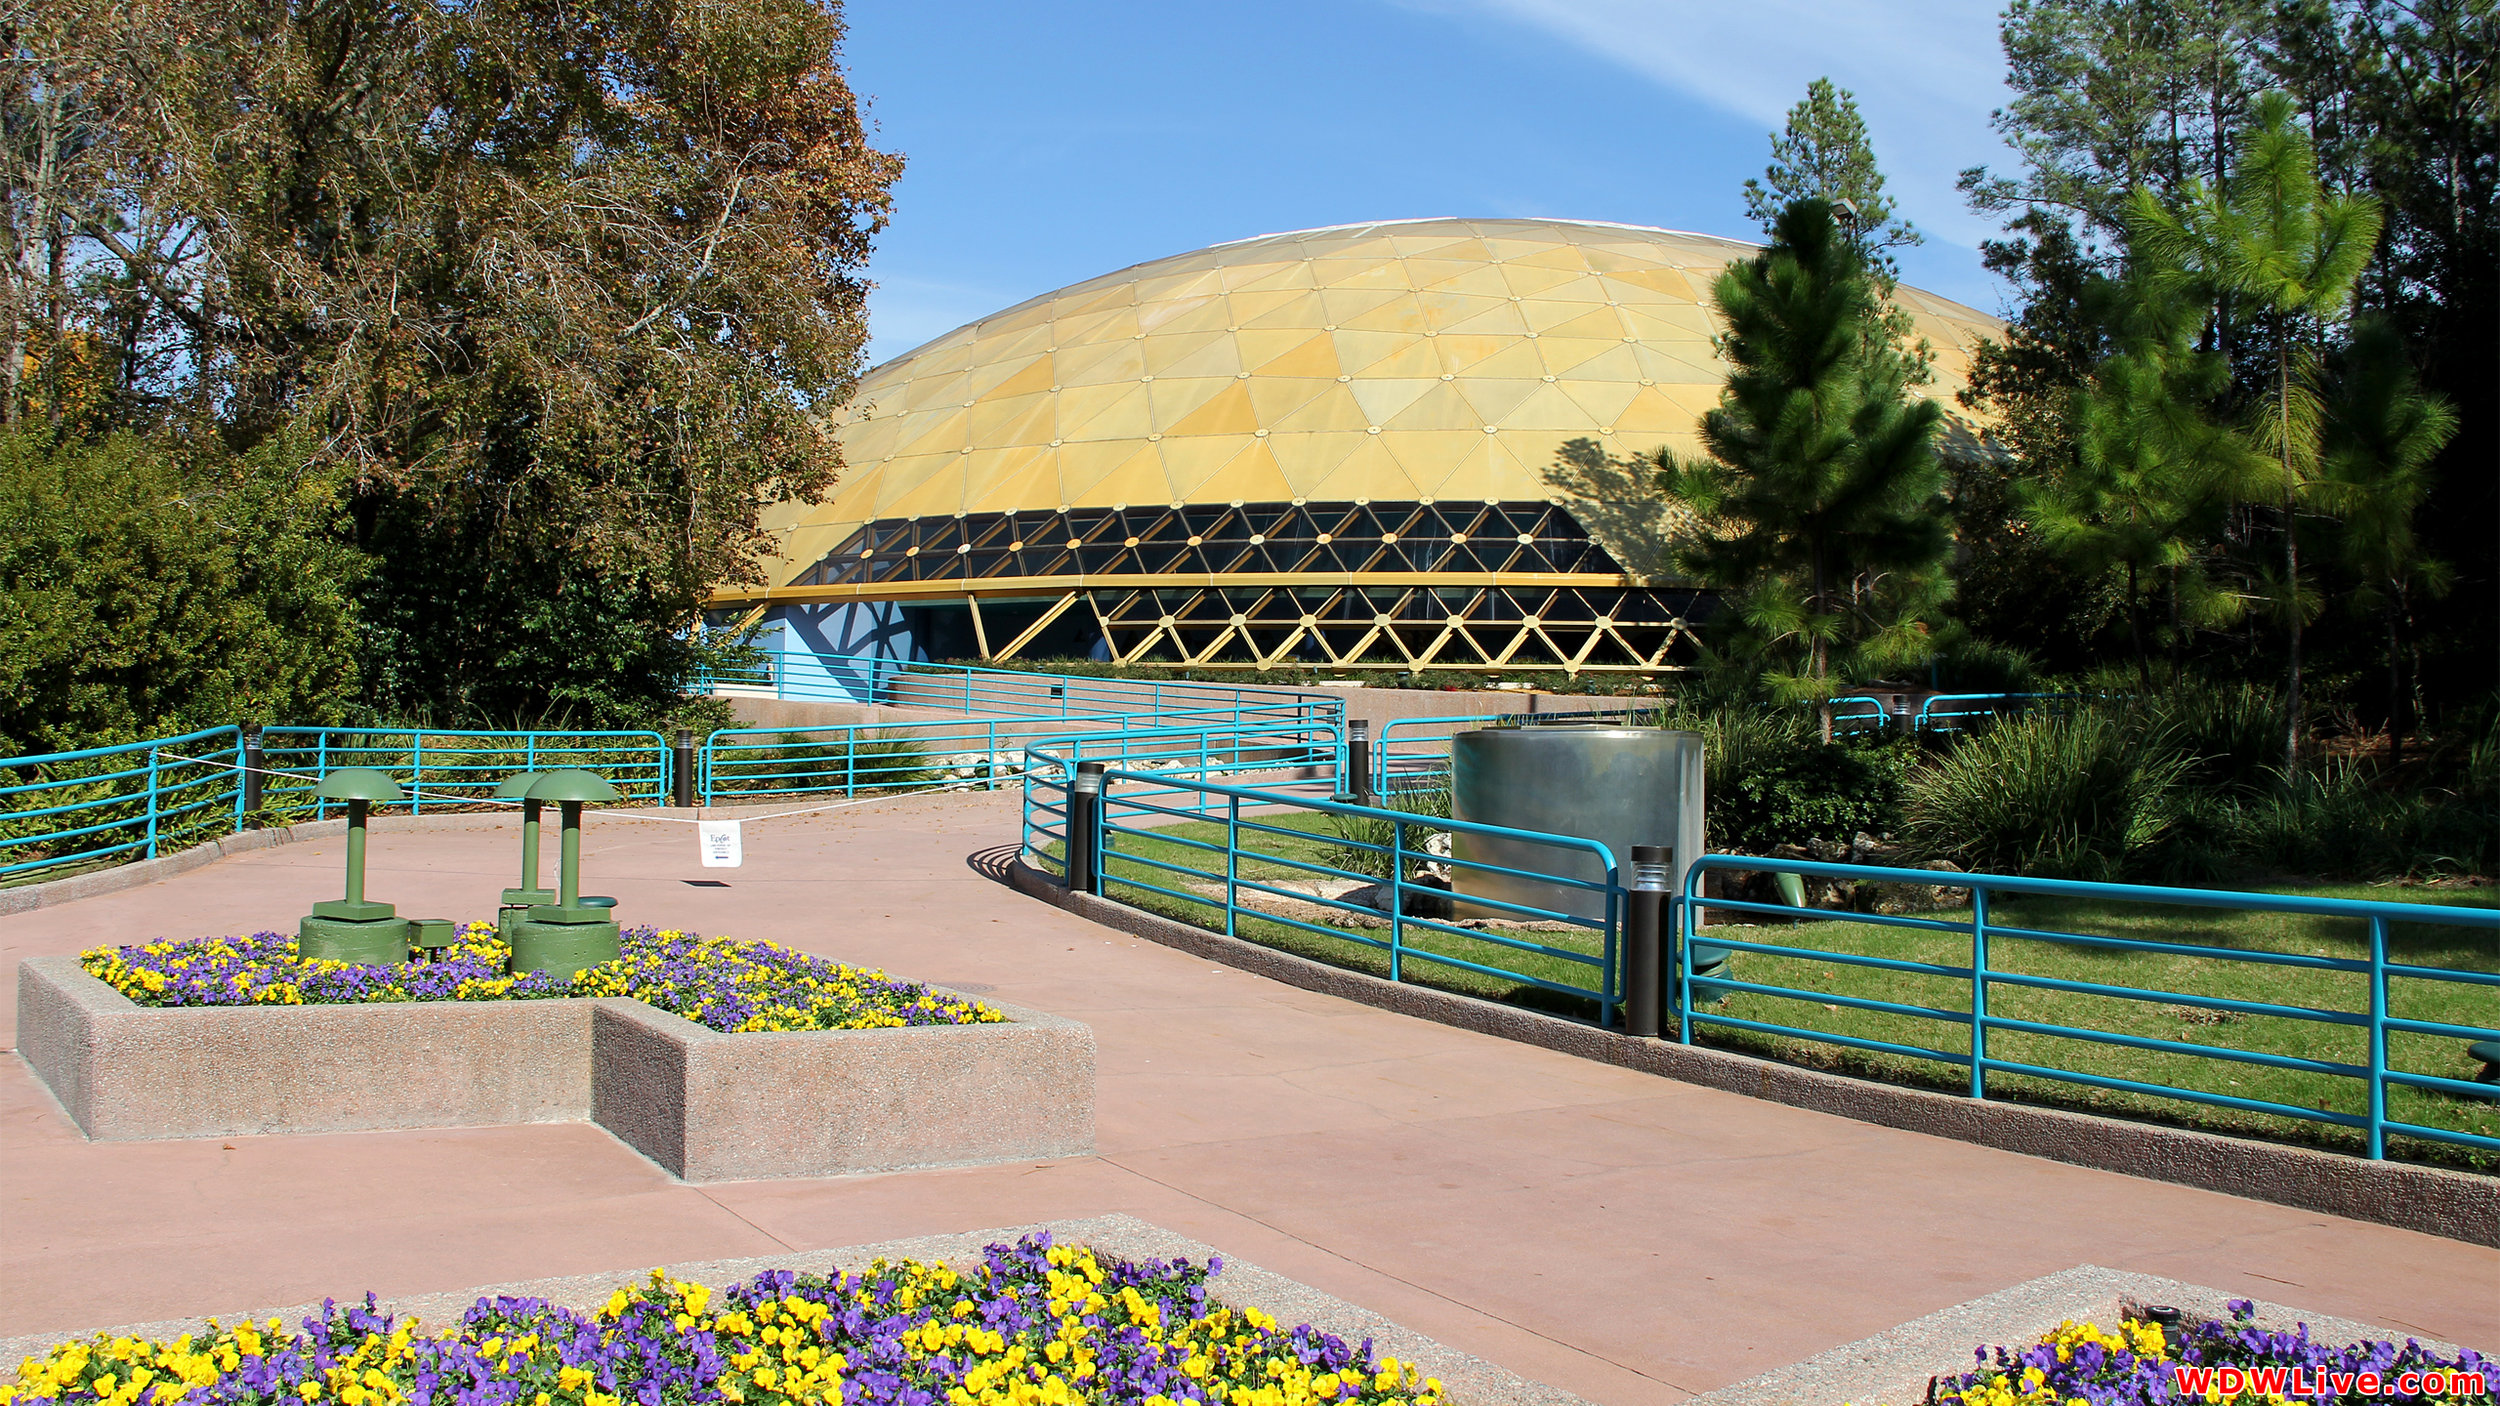 The defunct Wonders of Life Pavilion getting a new purpose